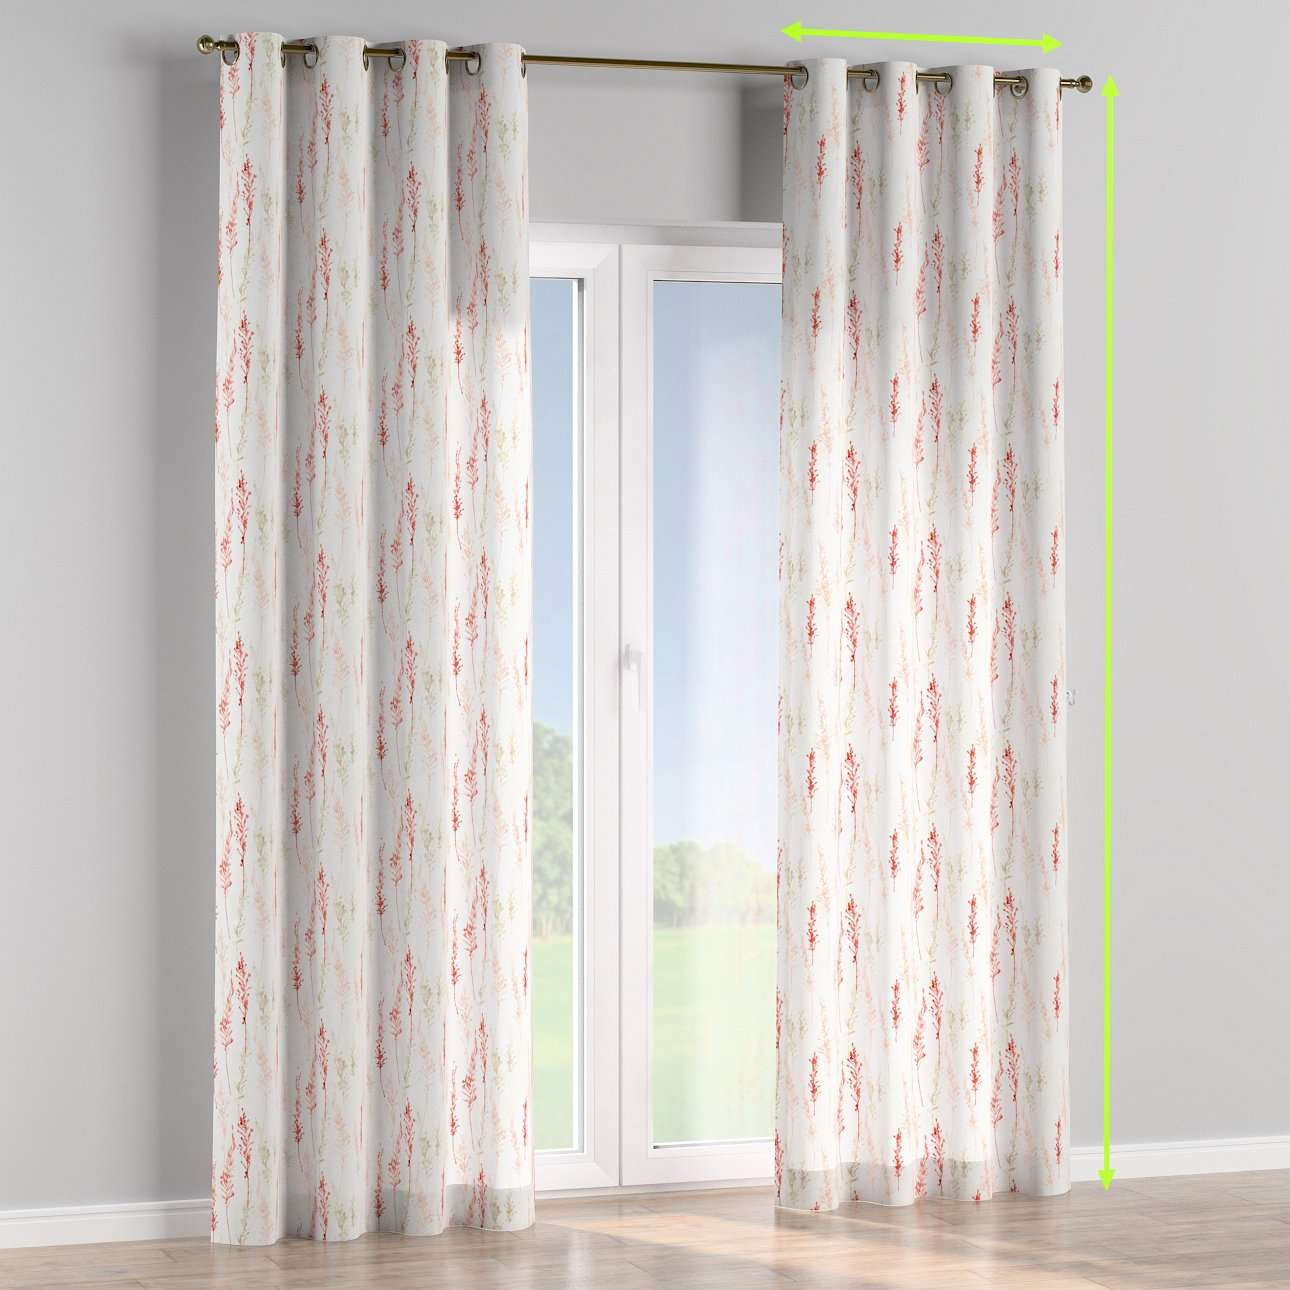 Eyelet curtains in collection Acapulco, fabric: 141-37